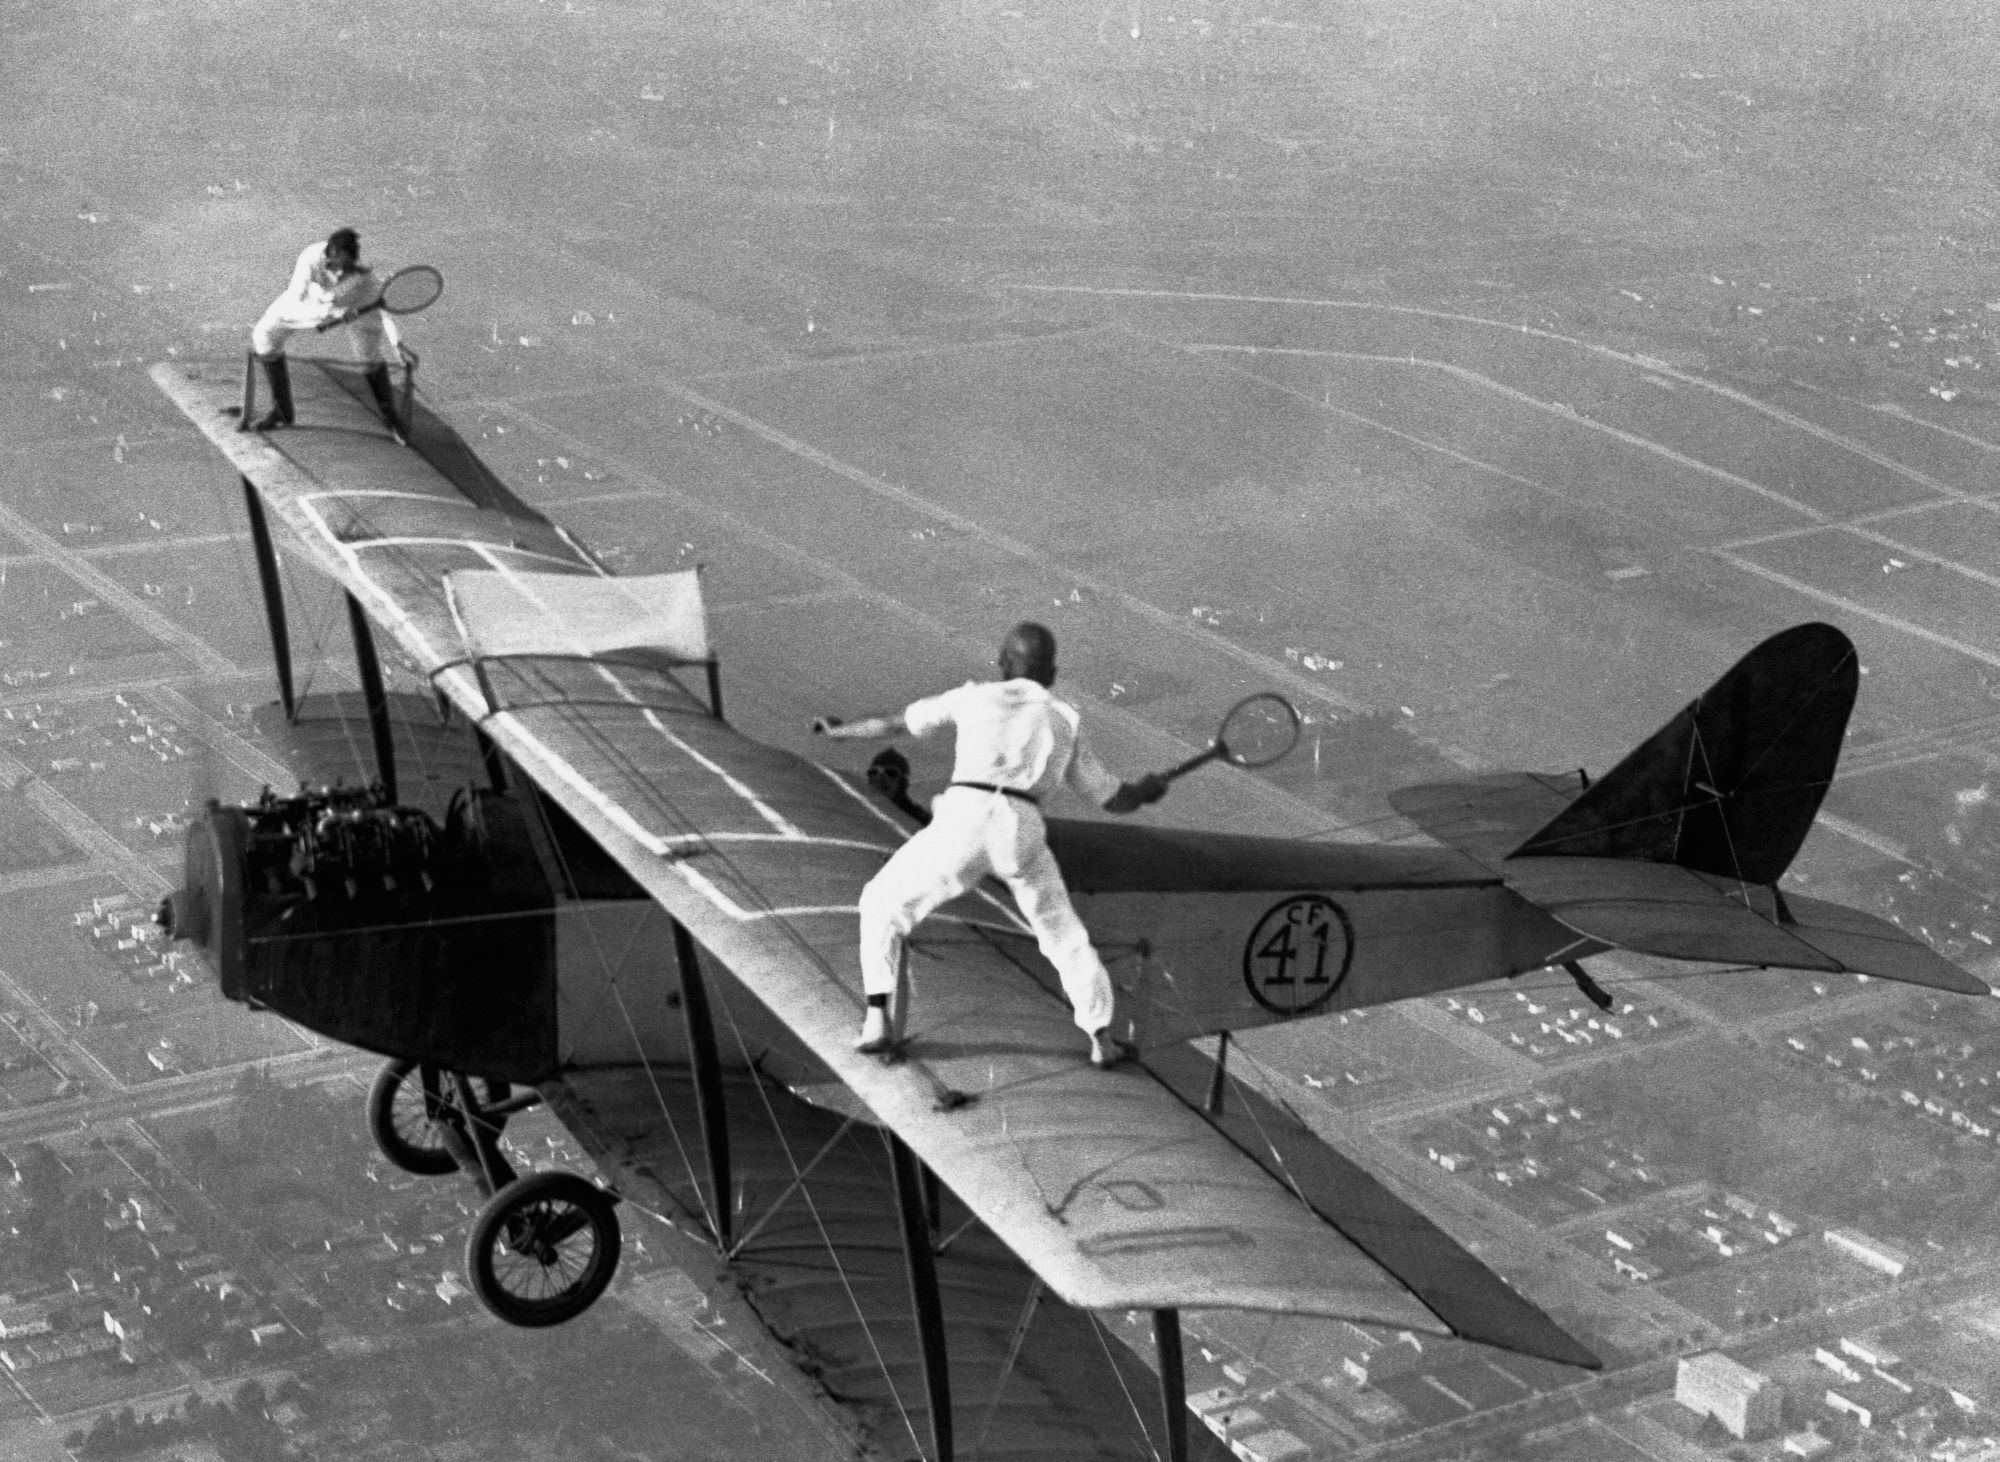 manliest photos on the internet, funny manly images, wing-walkers playing tennis